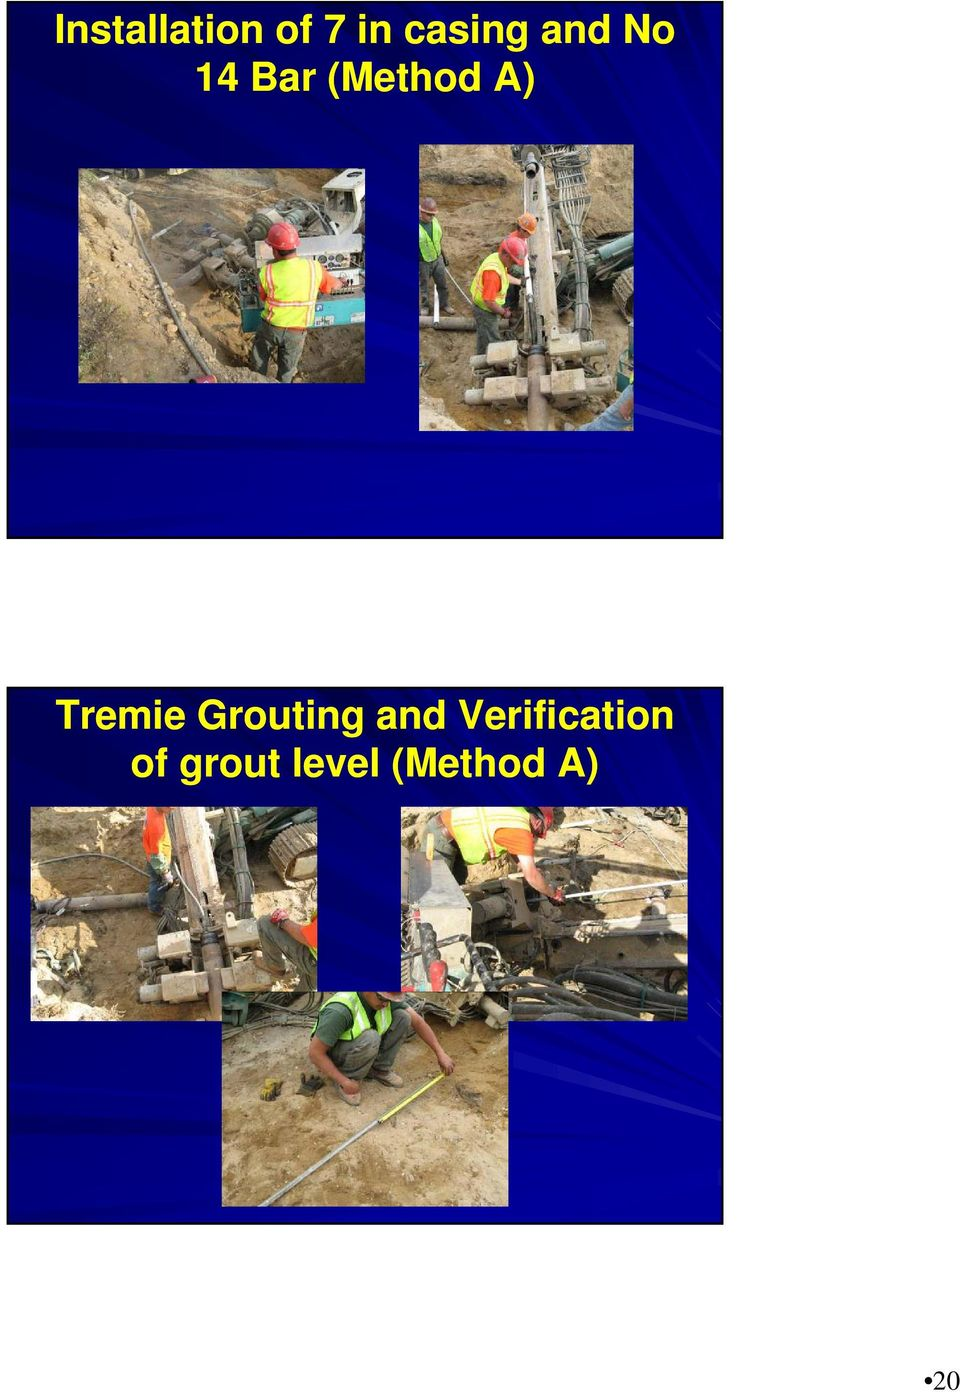 Tremie Grouting and